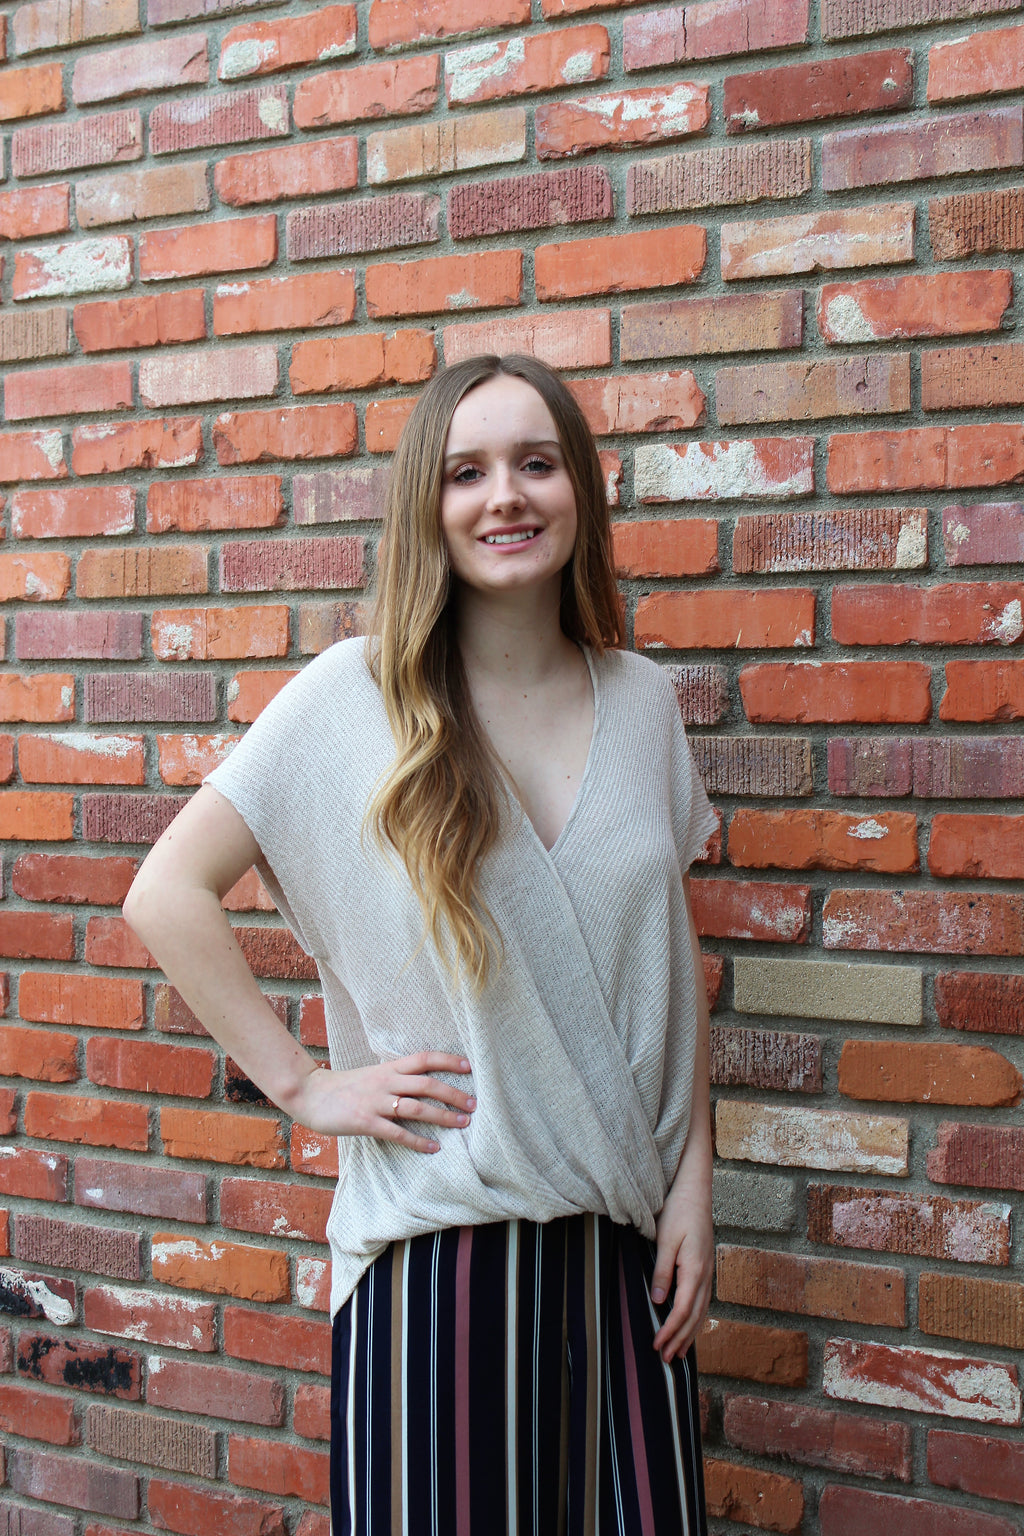 Natural Beauty Sweater Knit Top In Oatmeal By Lush